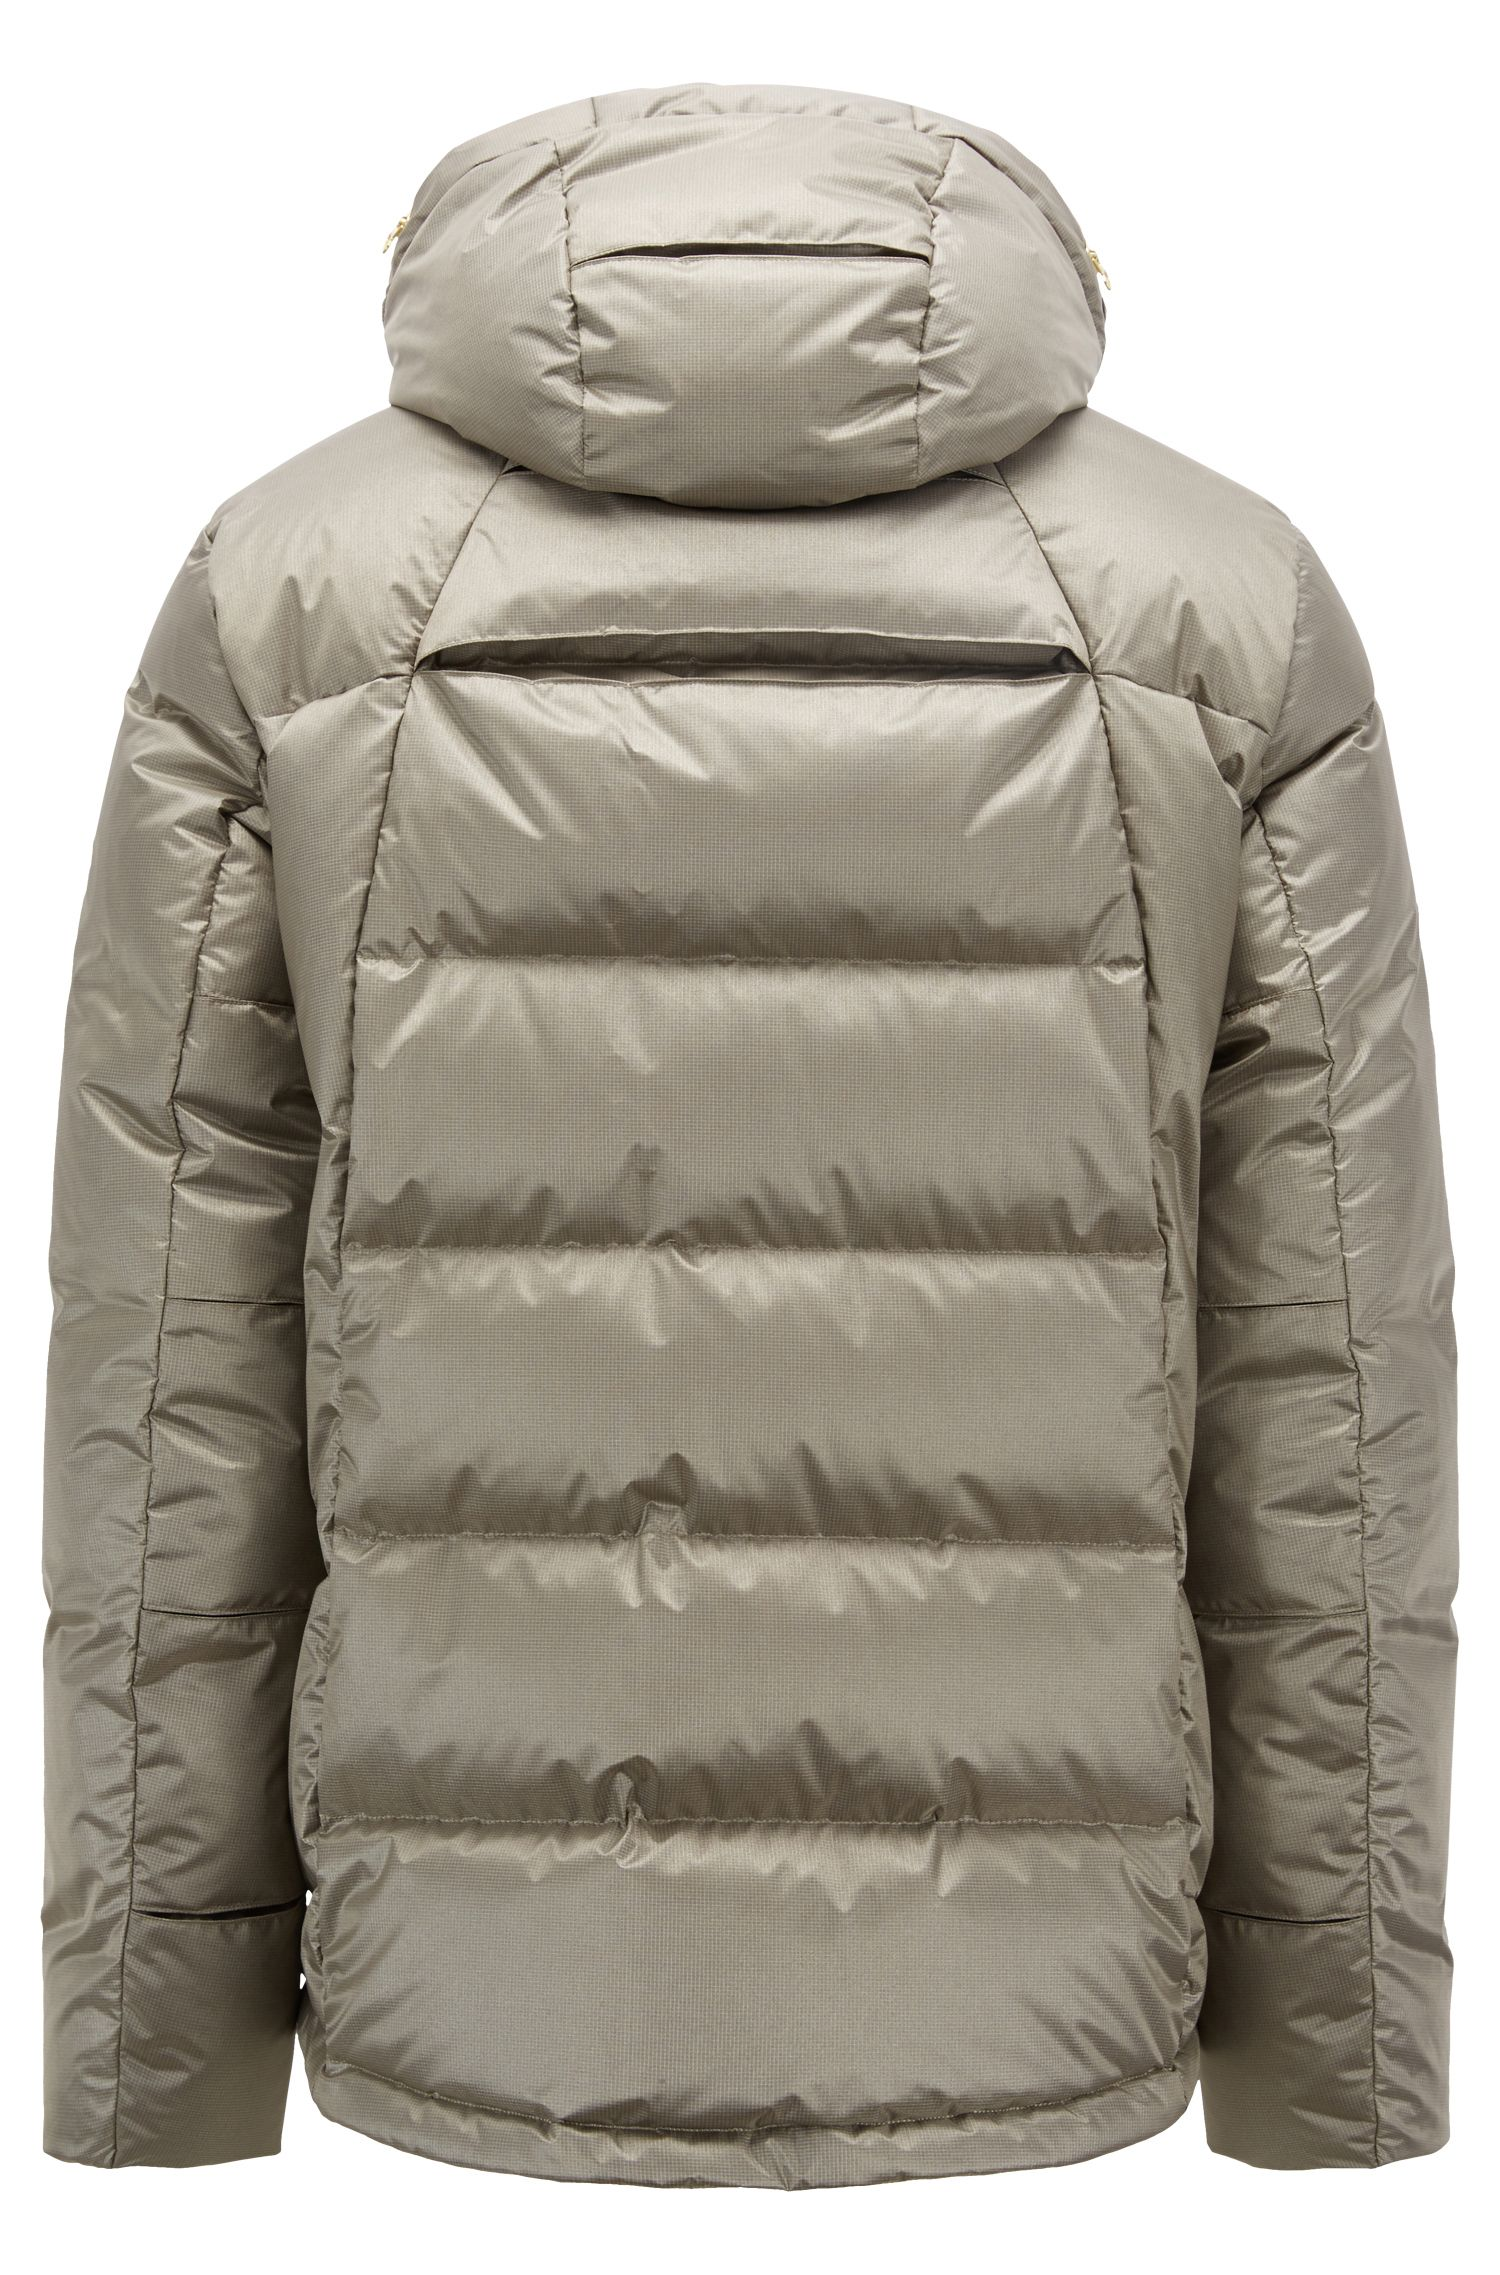 Metallic water-repellent down jacket with electromagnetic-wave blocker, Gold